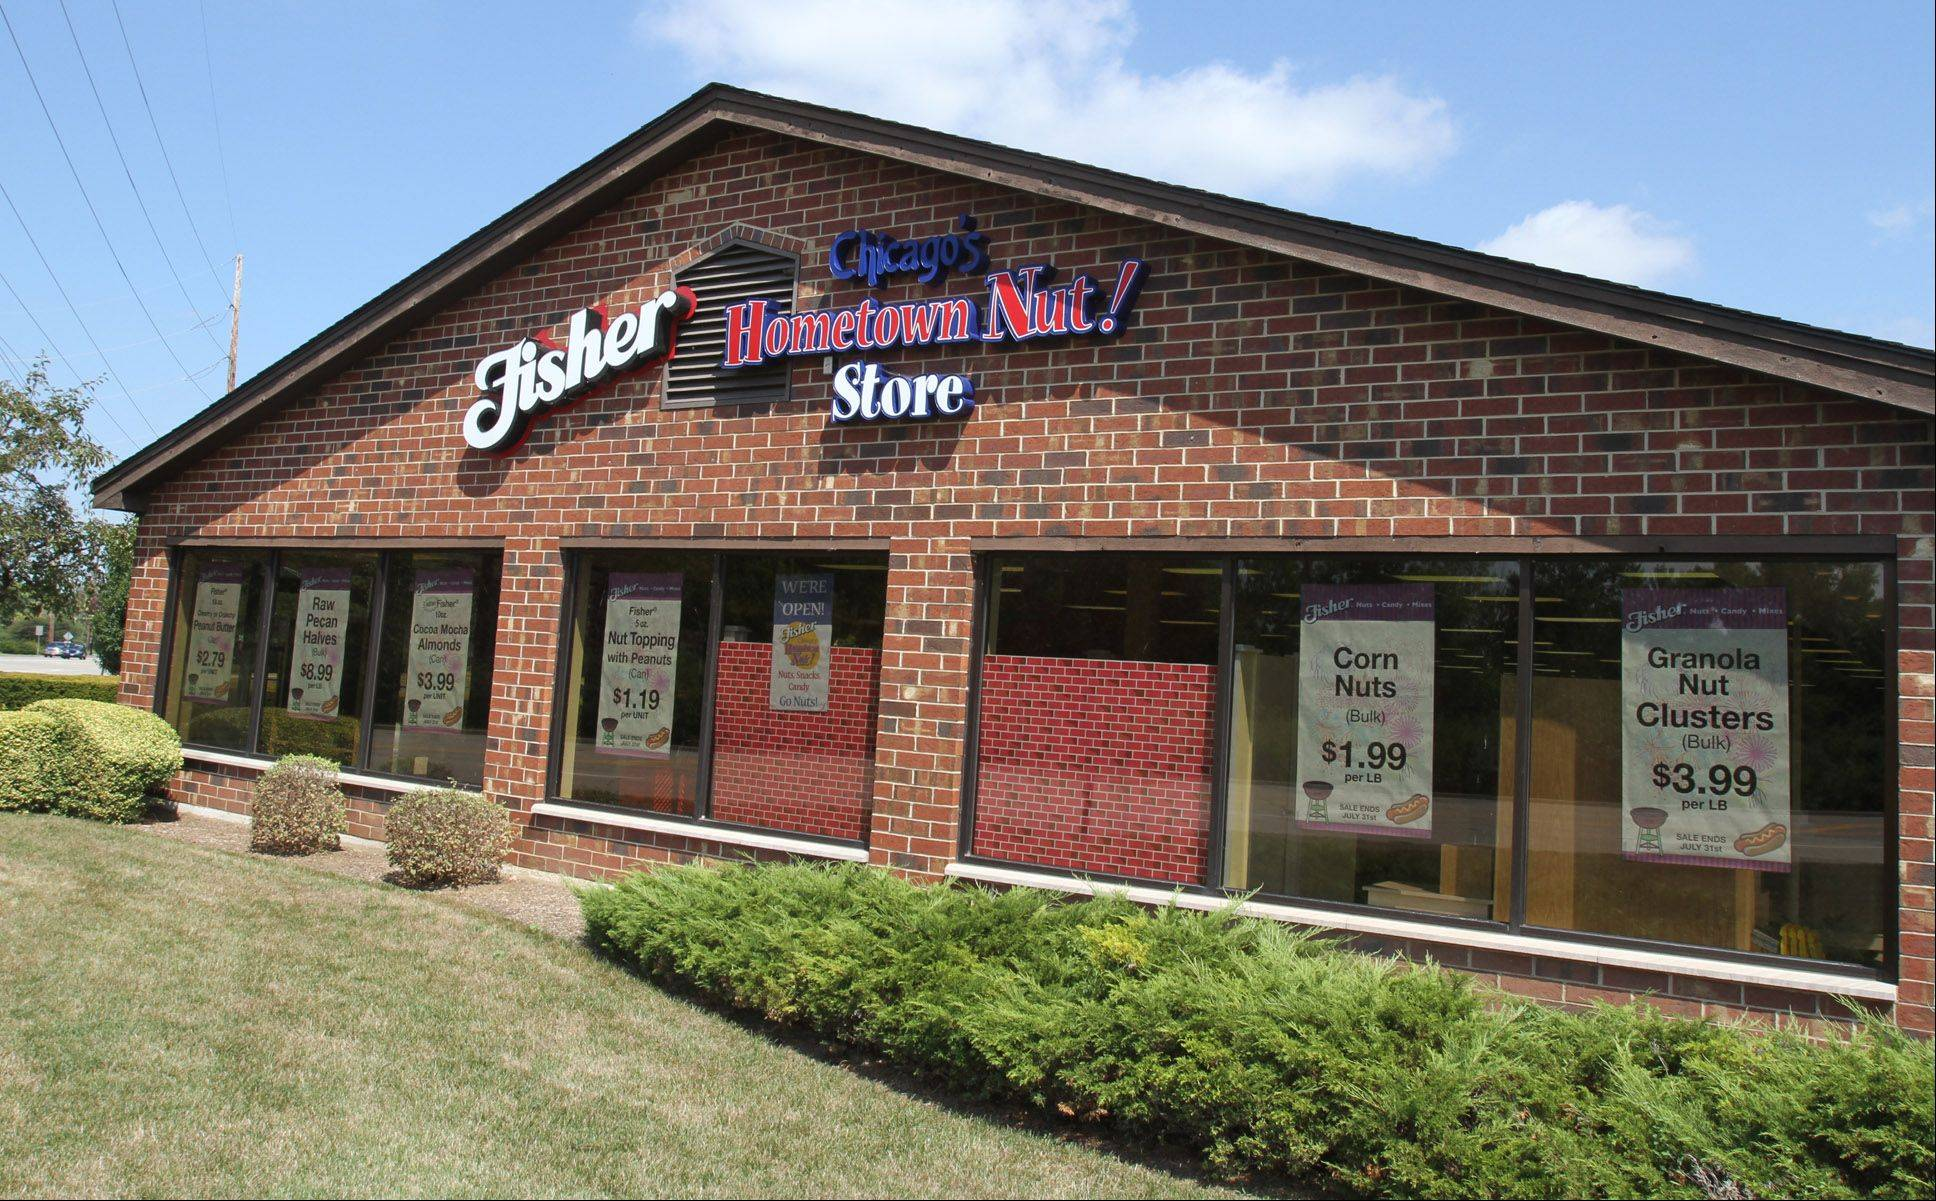 The Fisher Nut business at 906 S. Northwest Hwy. in Barrington is expected to be sold and converted to an Ace Hardware store this fall.